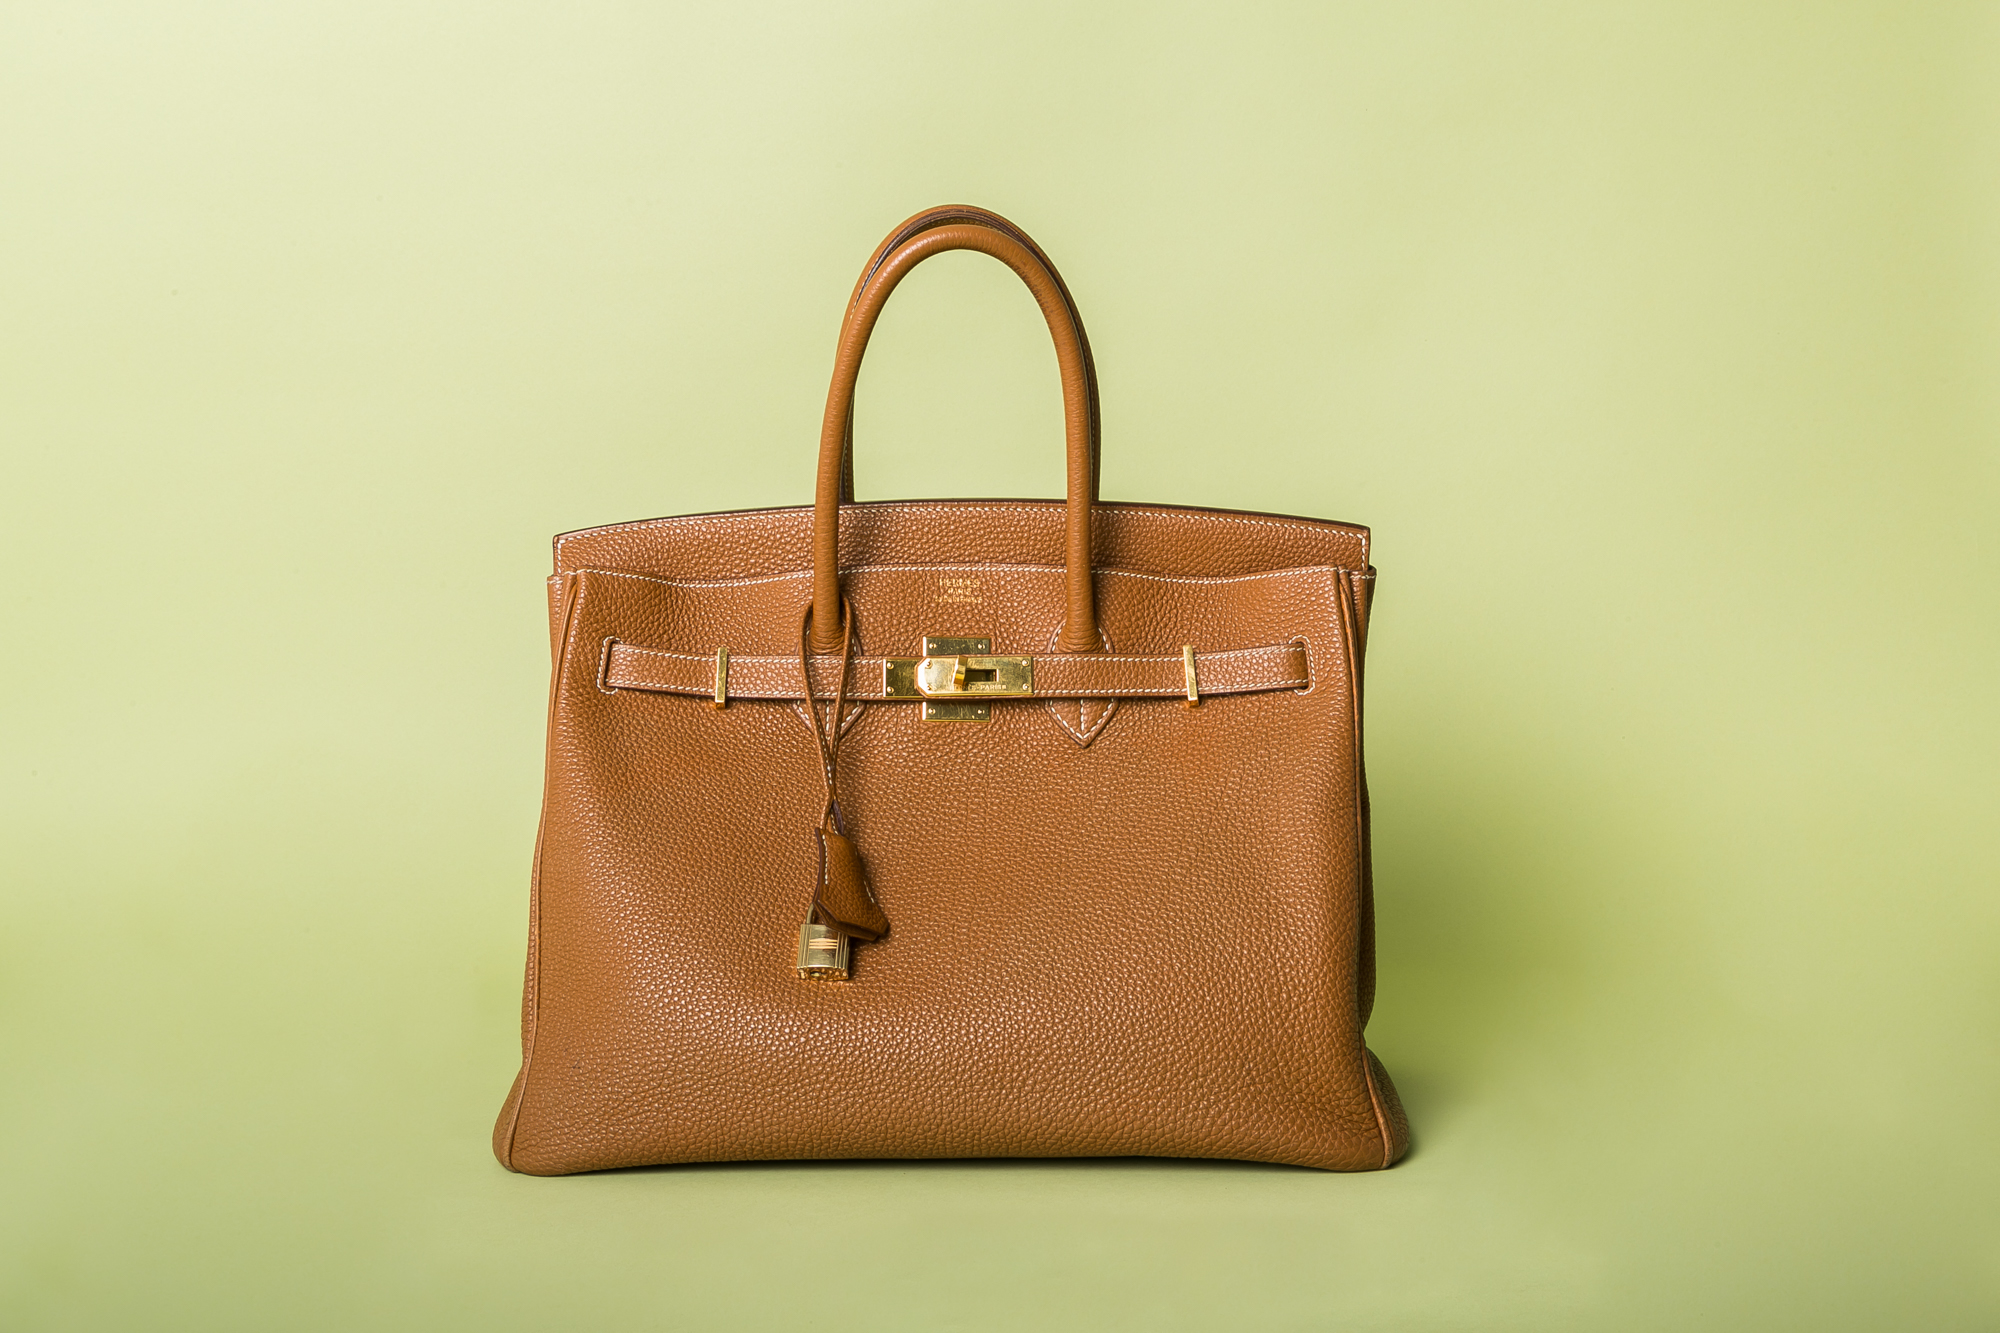 87b30c29545a Here s How to Spot the Difference Between Real and Fake Designer Bags -  Racked